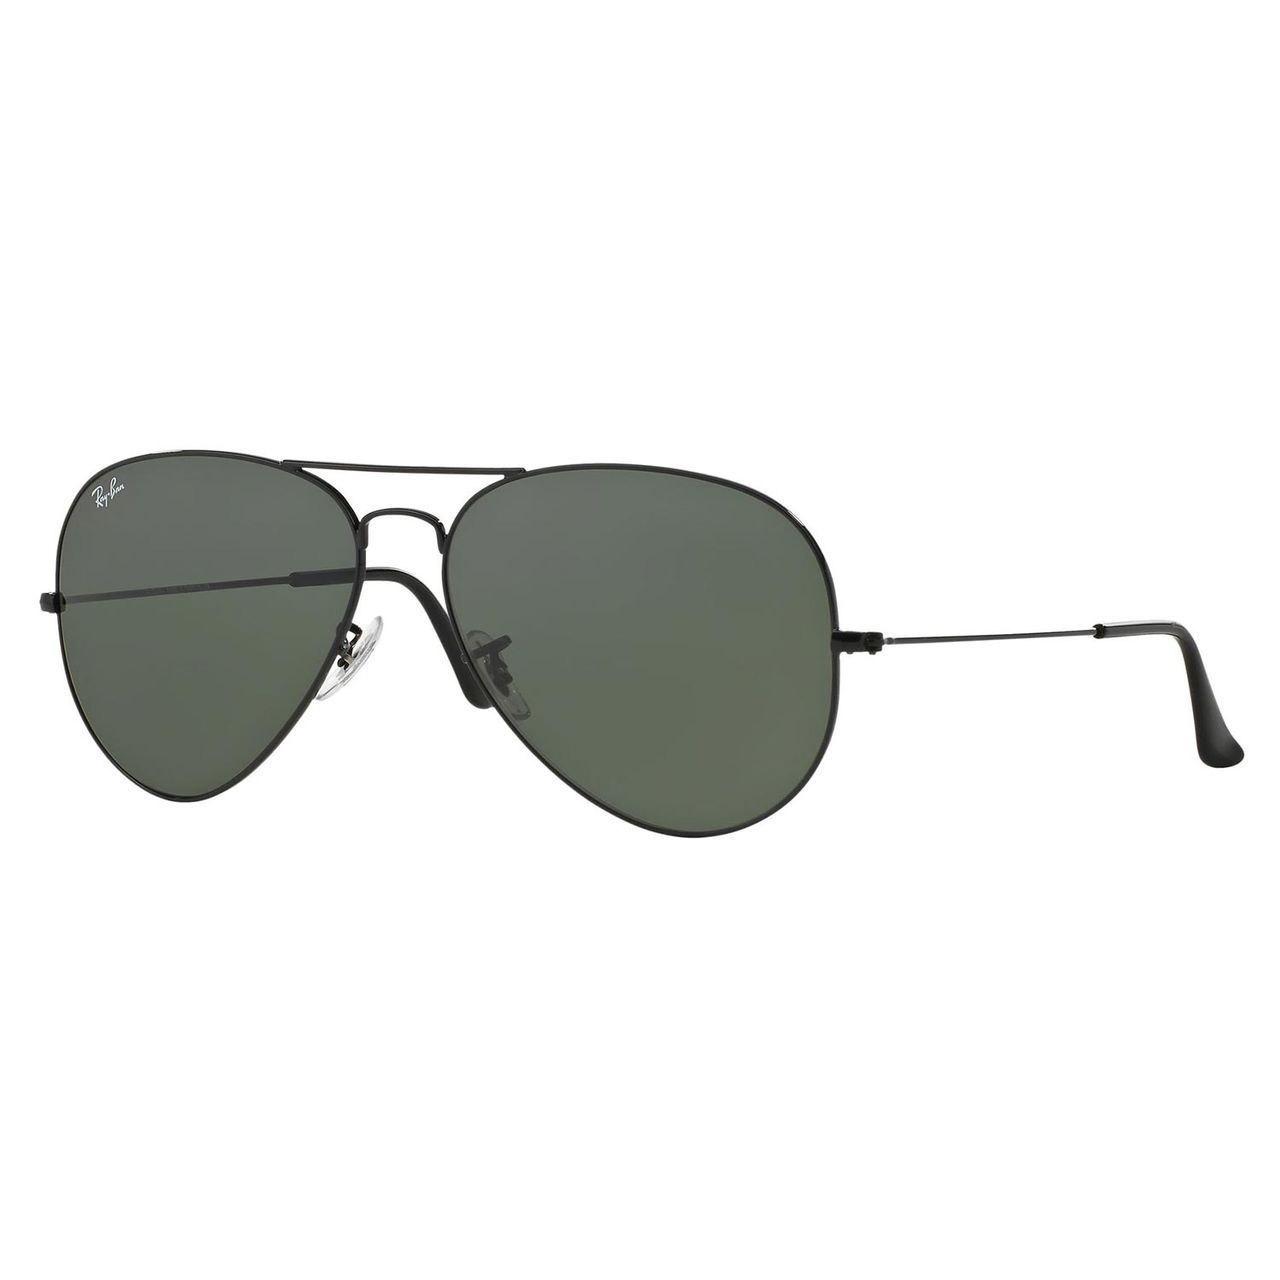 642cc7423e4 Shop Ray-Ban RB3026 Aviator Sunglasses - Black - Free Shipping Today ...